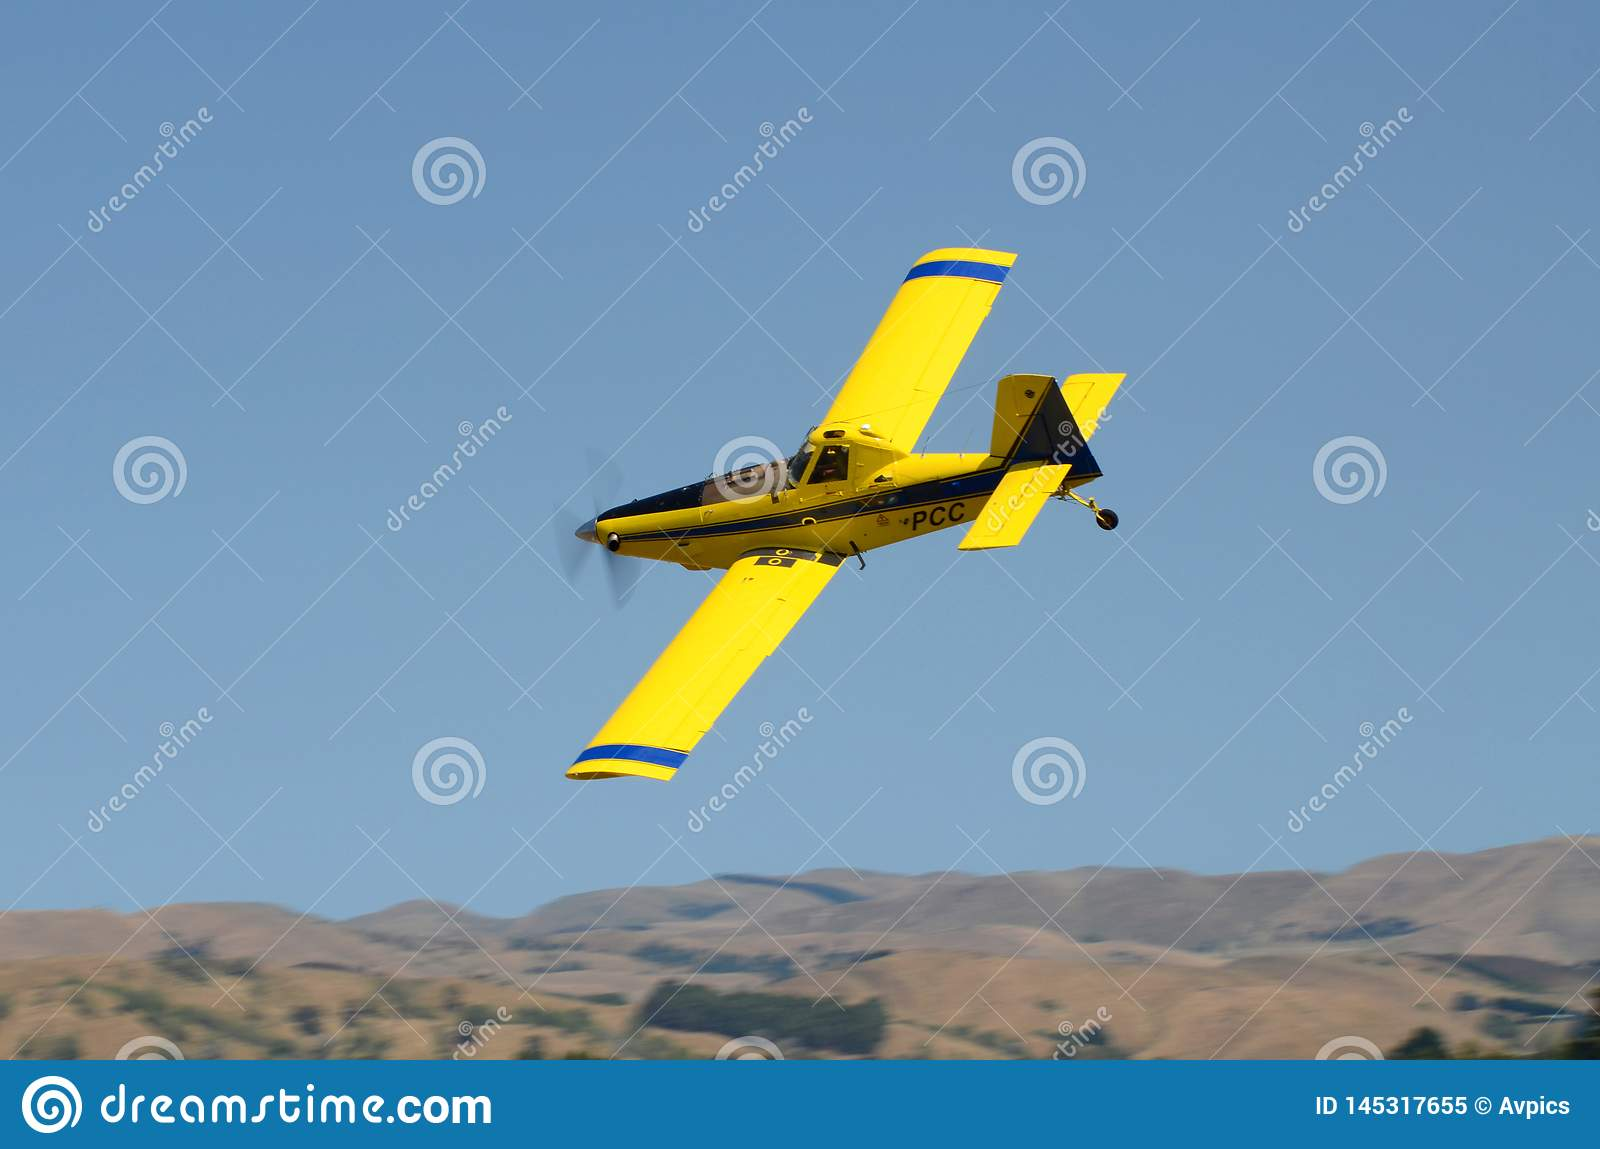 Air Tractor AT-402B ZK-PCC agricultural aircraft